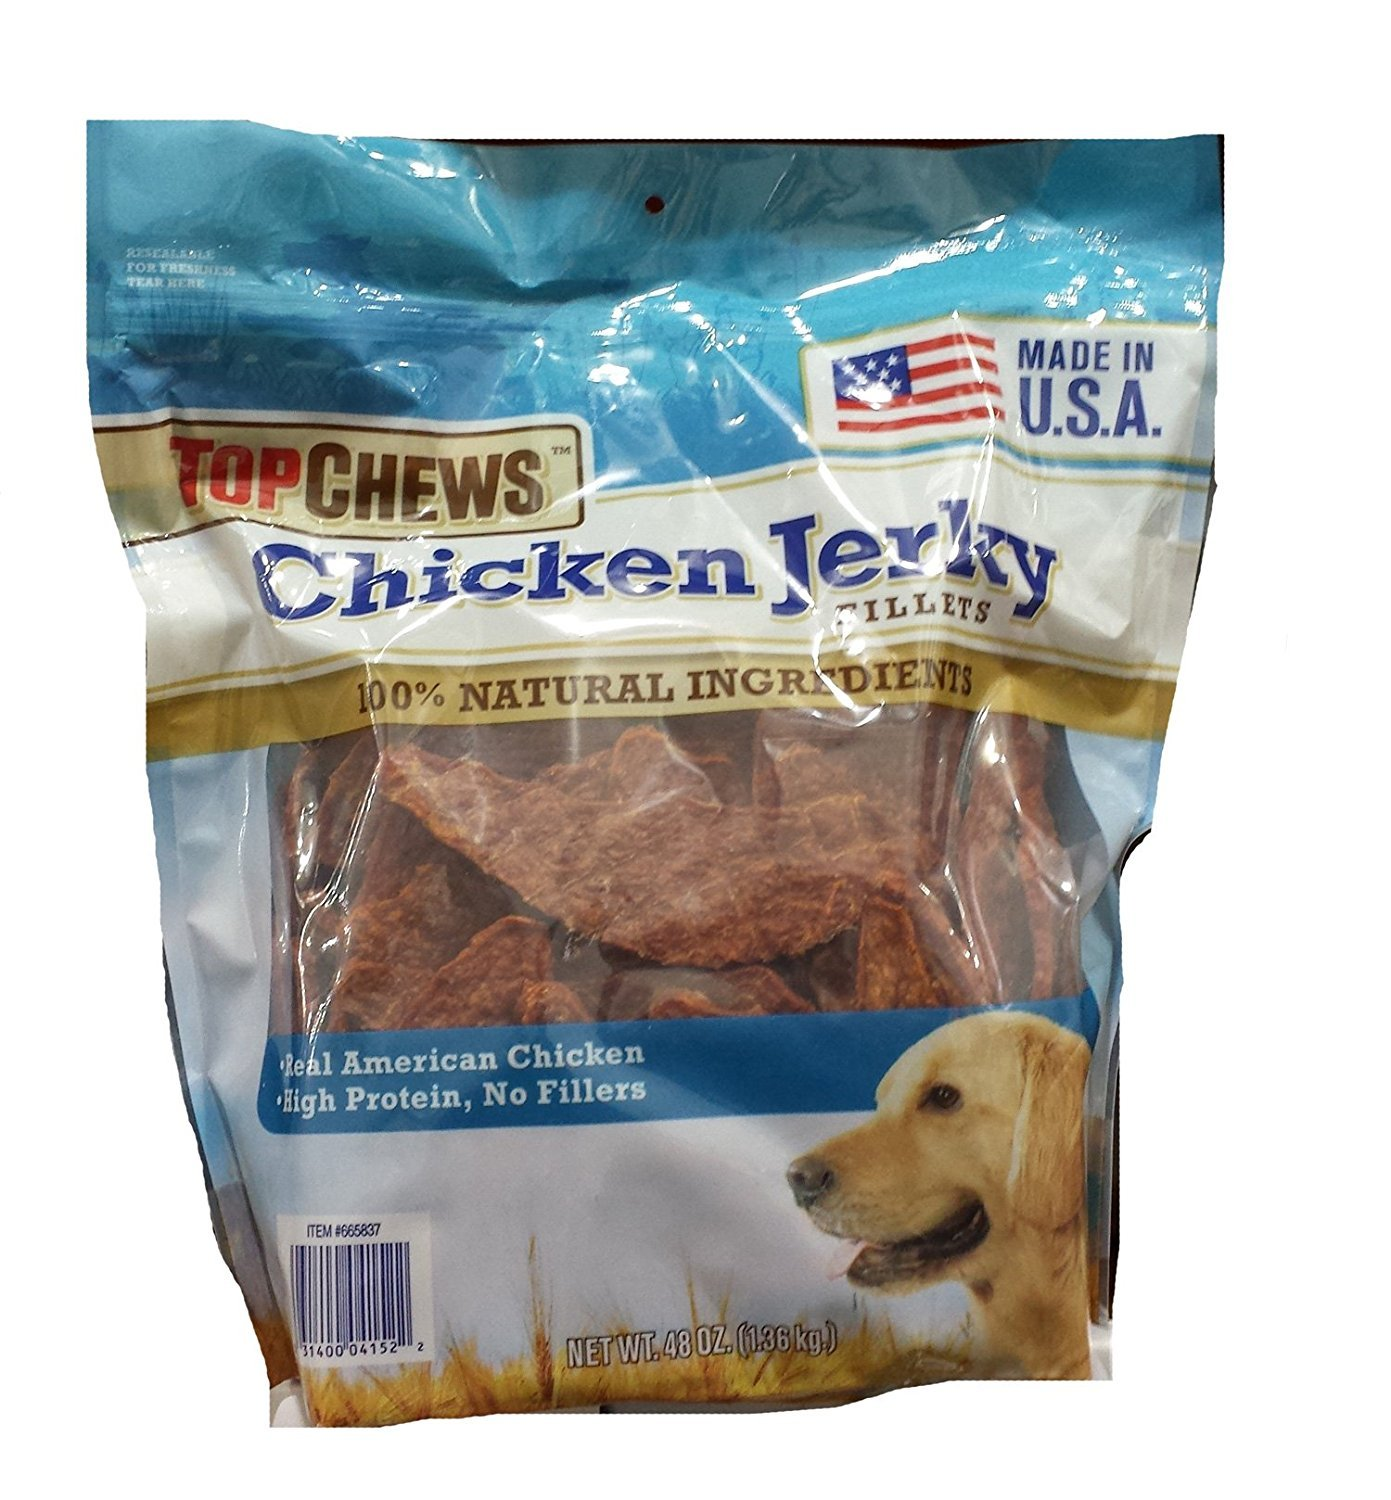 Top Chews Chicken Jerky 1Pack ( 48oz Each) Nkvlcd by Tyson top chews chicken jerky 48oz